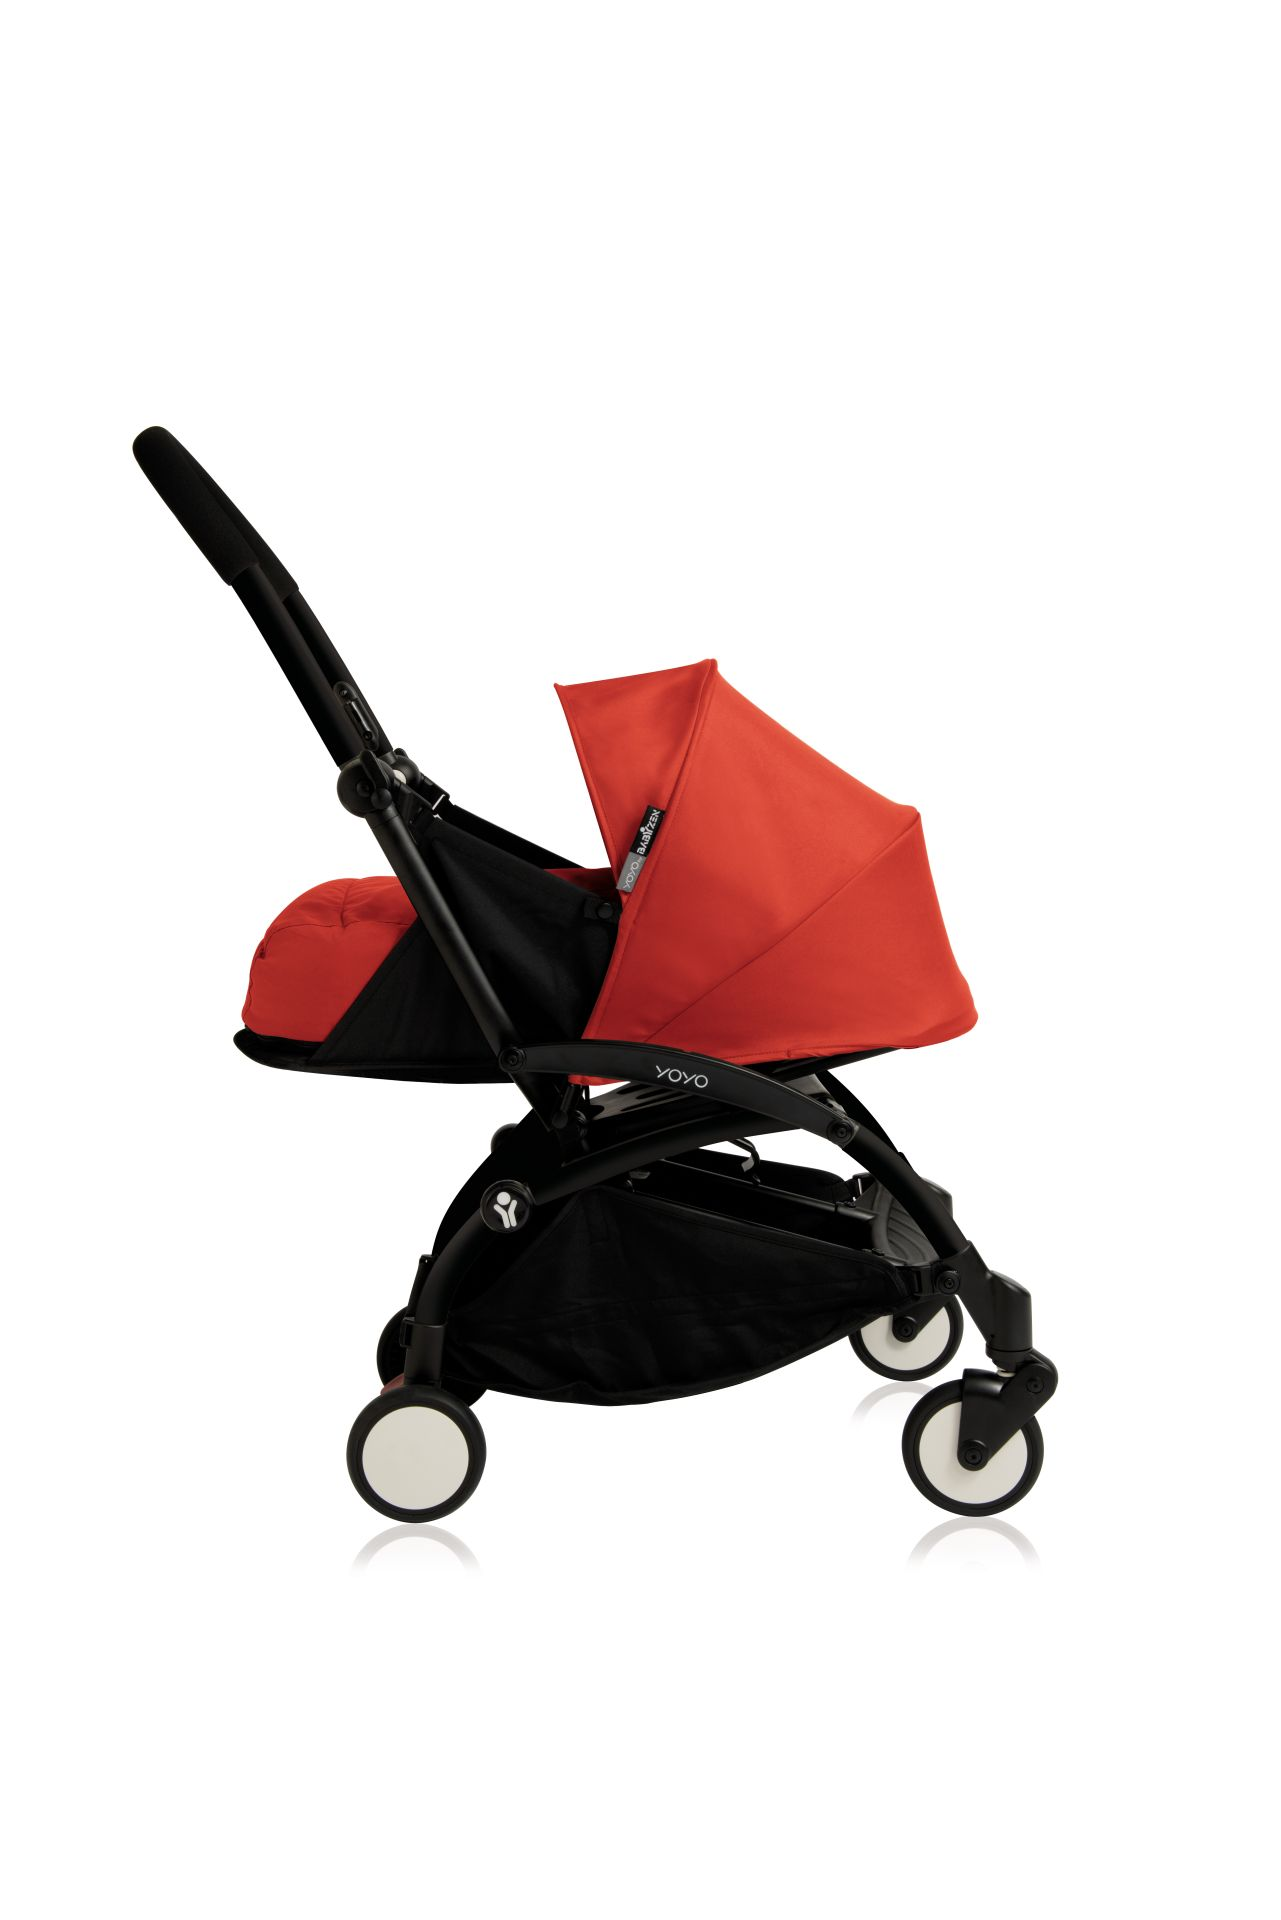 Babyzen Buggy YOYO+ including Textile Sets 0+ and 6+ 2018 Rot black ...